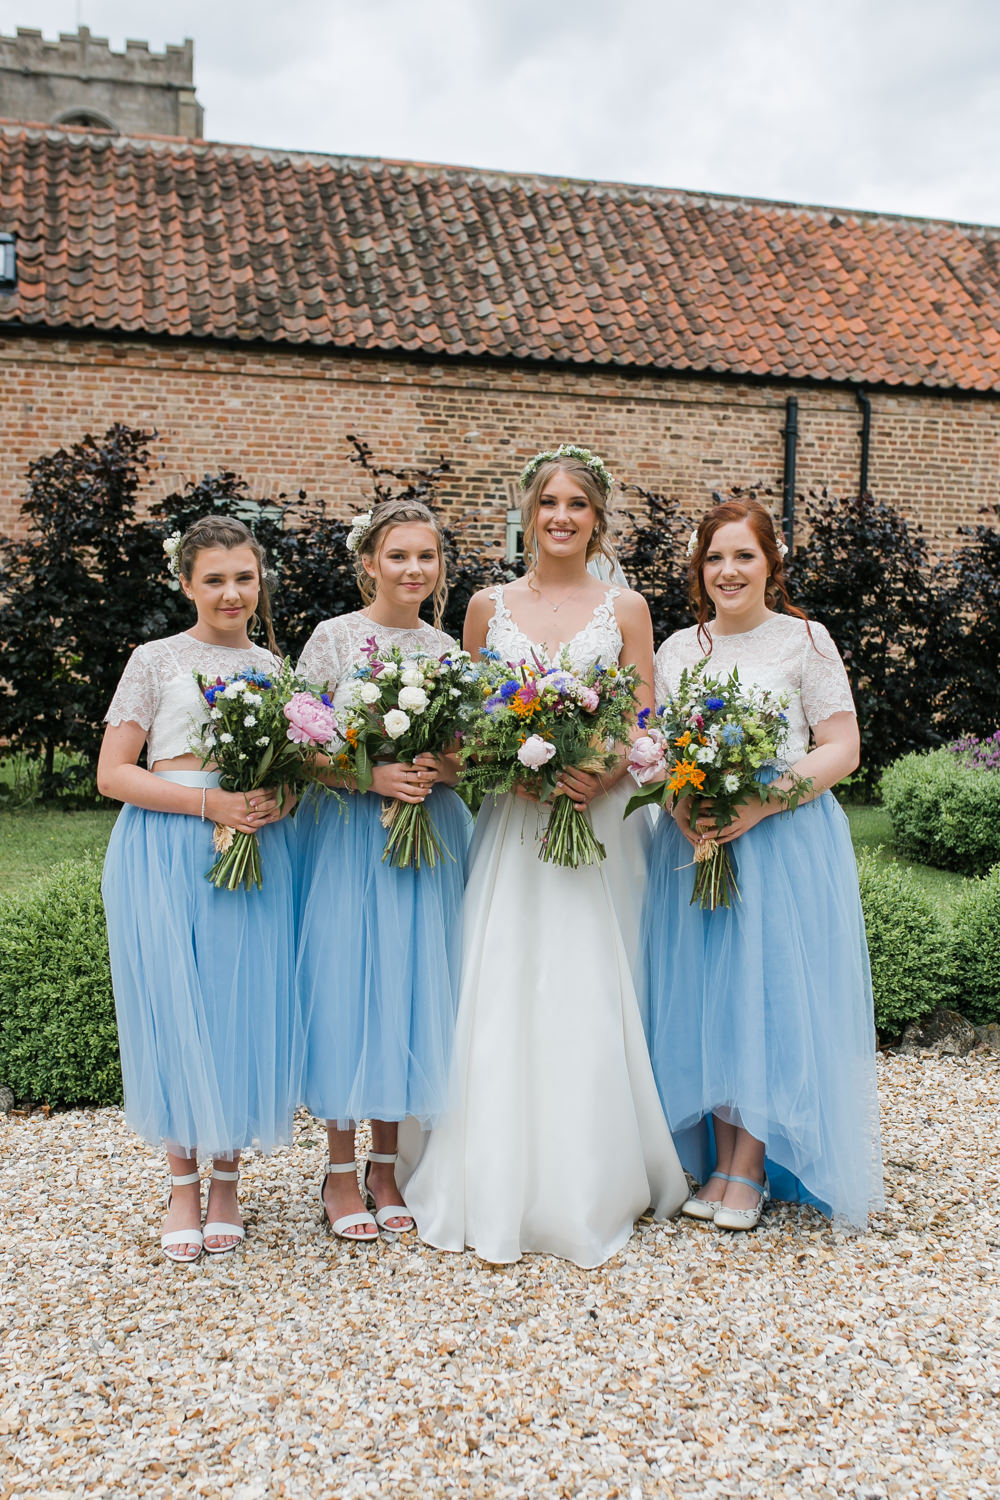 Bride Bridal V Neck A Line Dress Gown Lace Edged Veil Flower Crown Multicoloured Bouquet Blue Tull Skirt Bridesmaids Lincolnshire Tipi Wedding Jessy Jones Photography